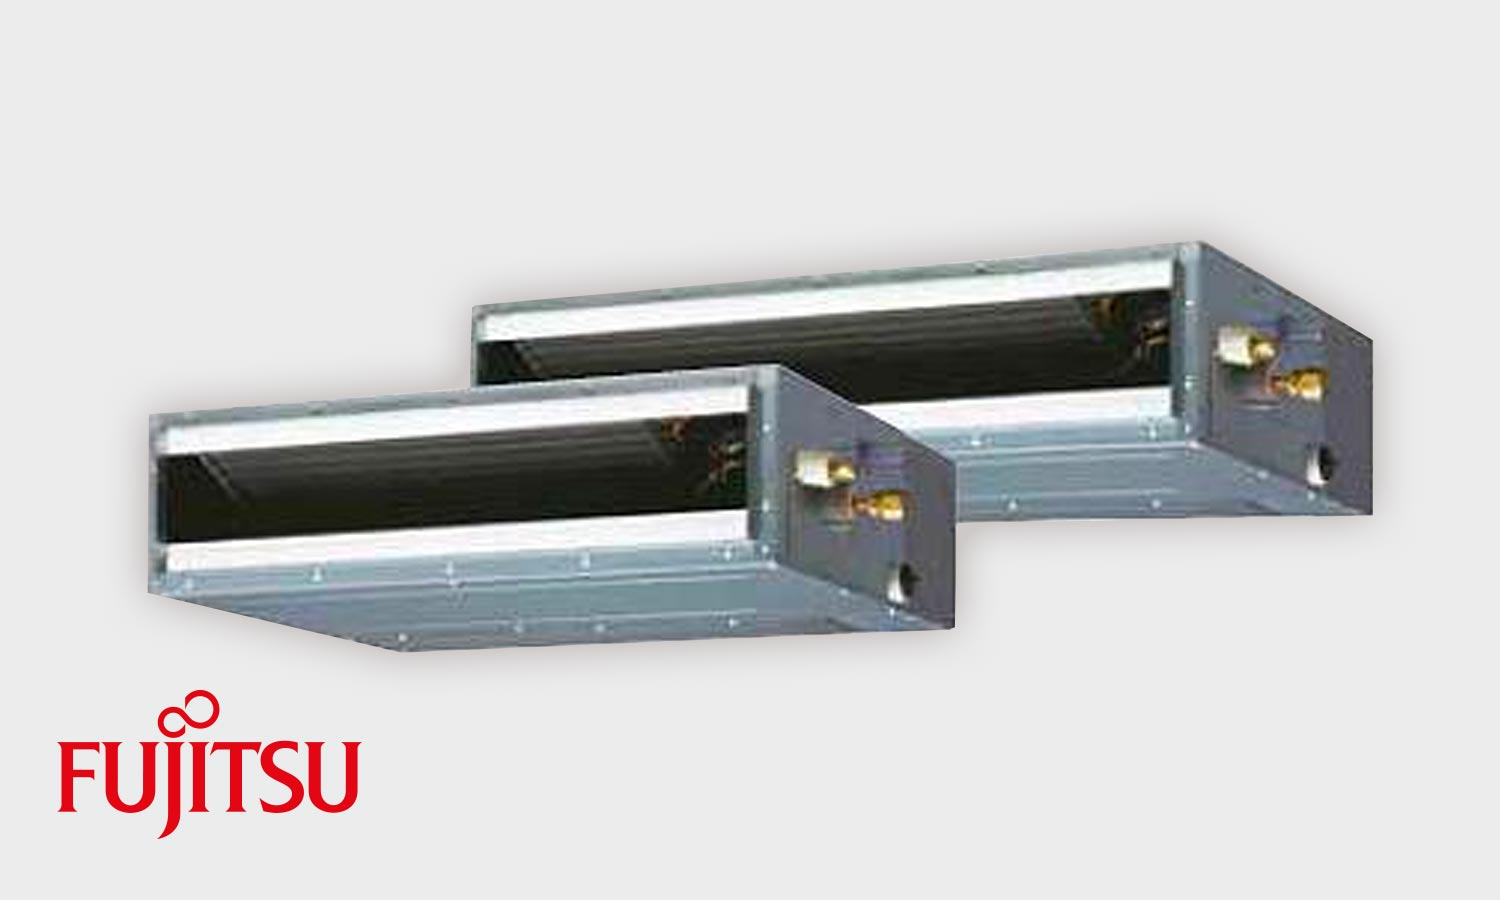 fujitsu-heat-pumps-ducted-system-2